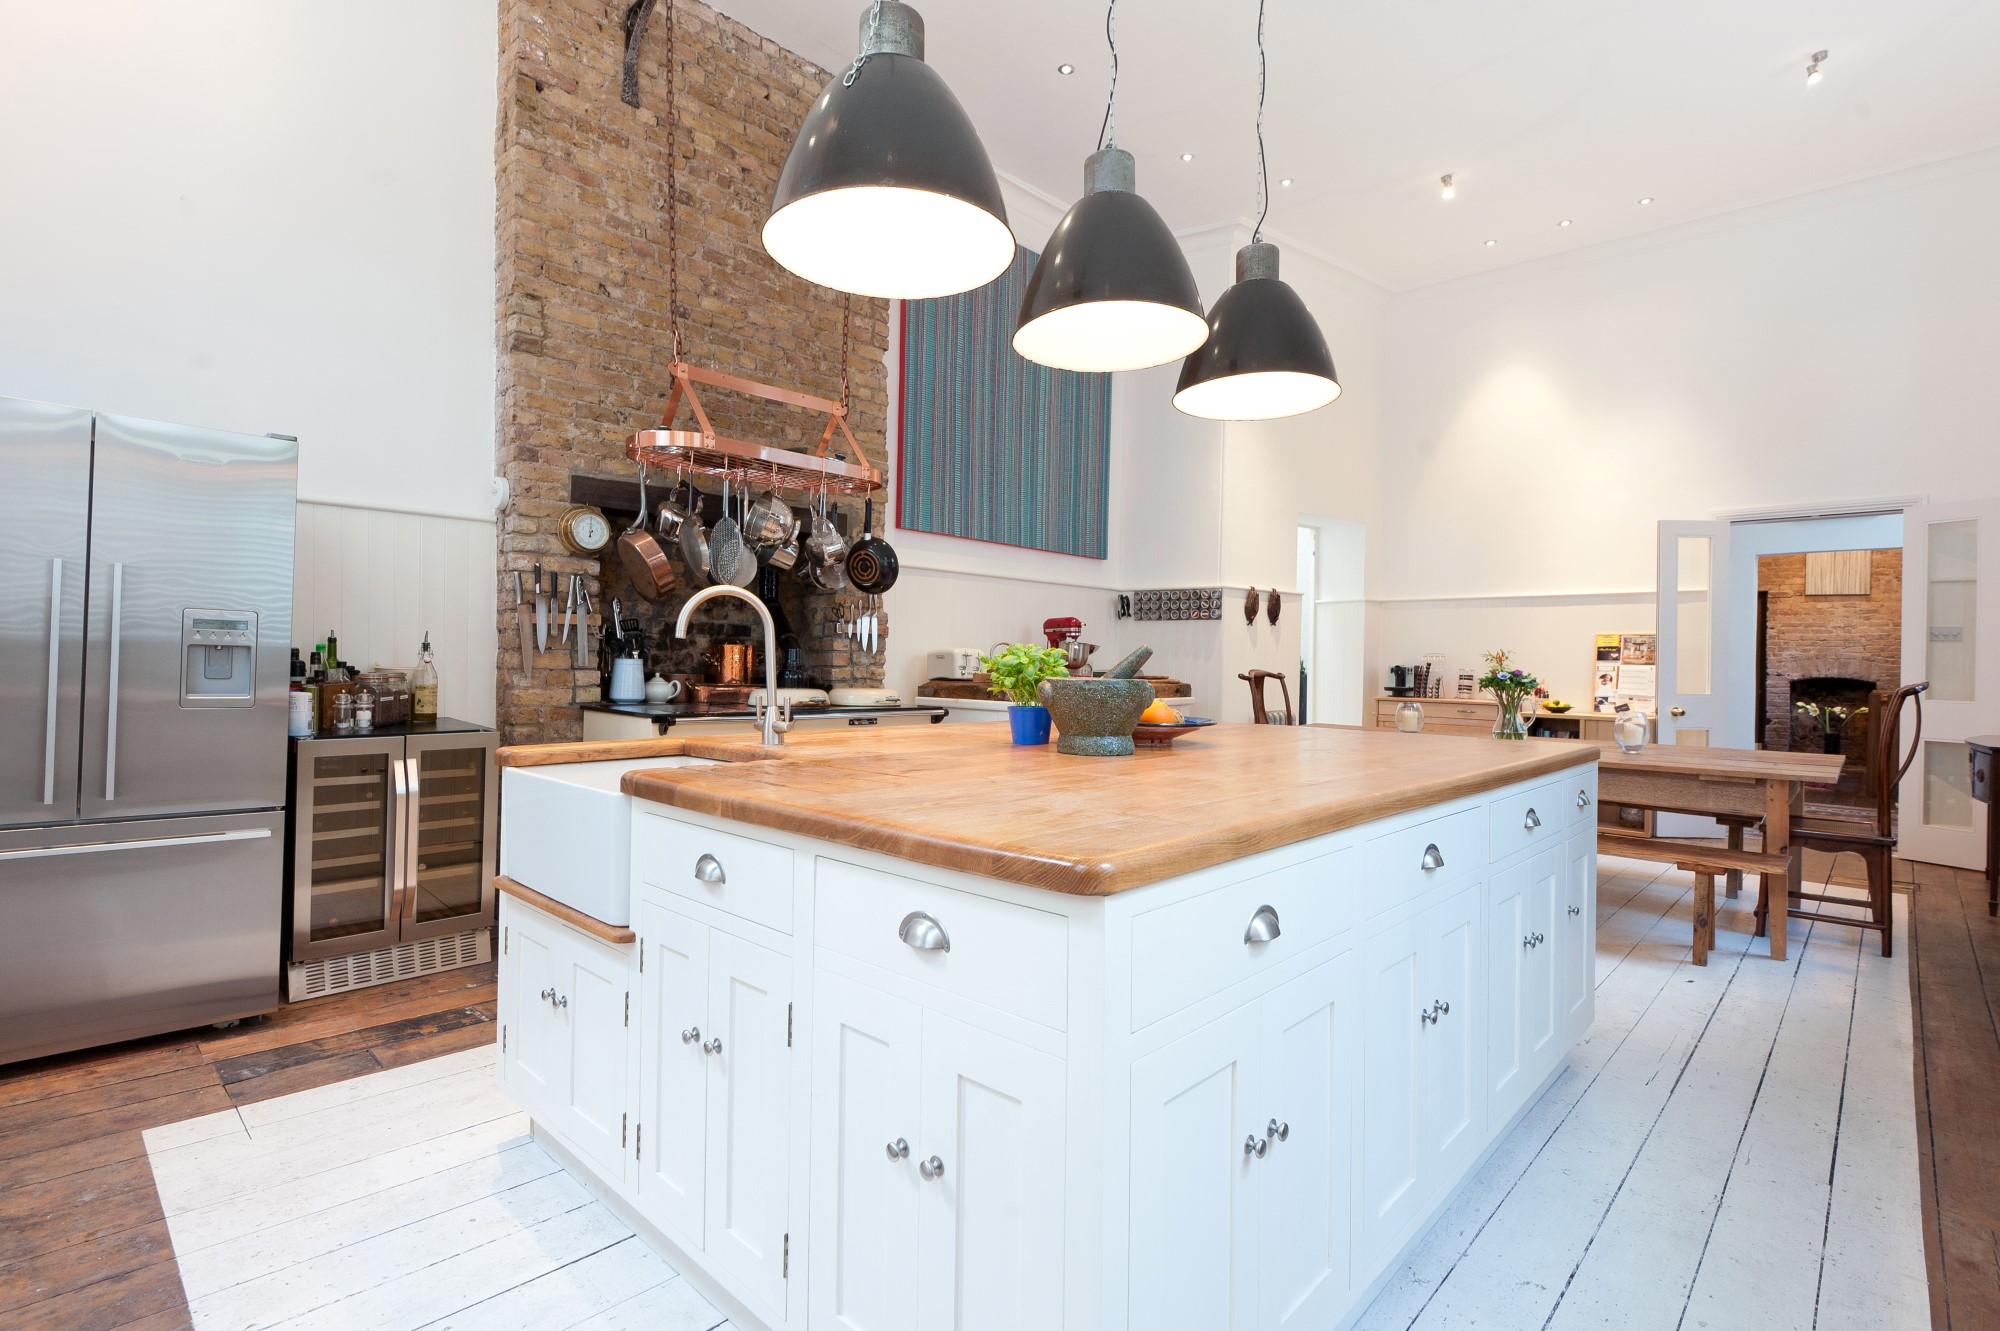 Single Family Home for sale in Brewery Square, London, England ,EC1V 4LE  , United Kingdom